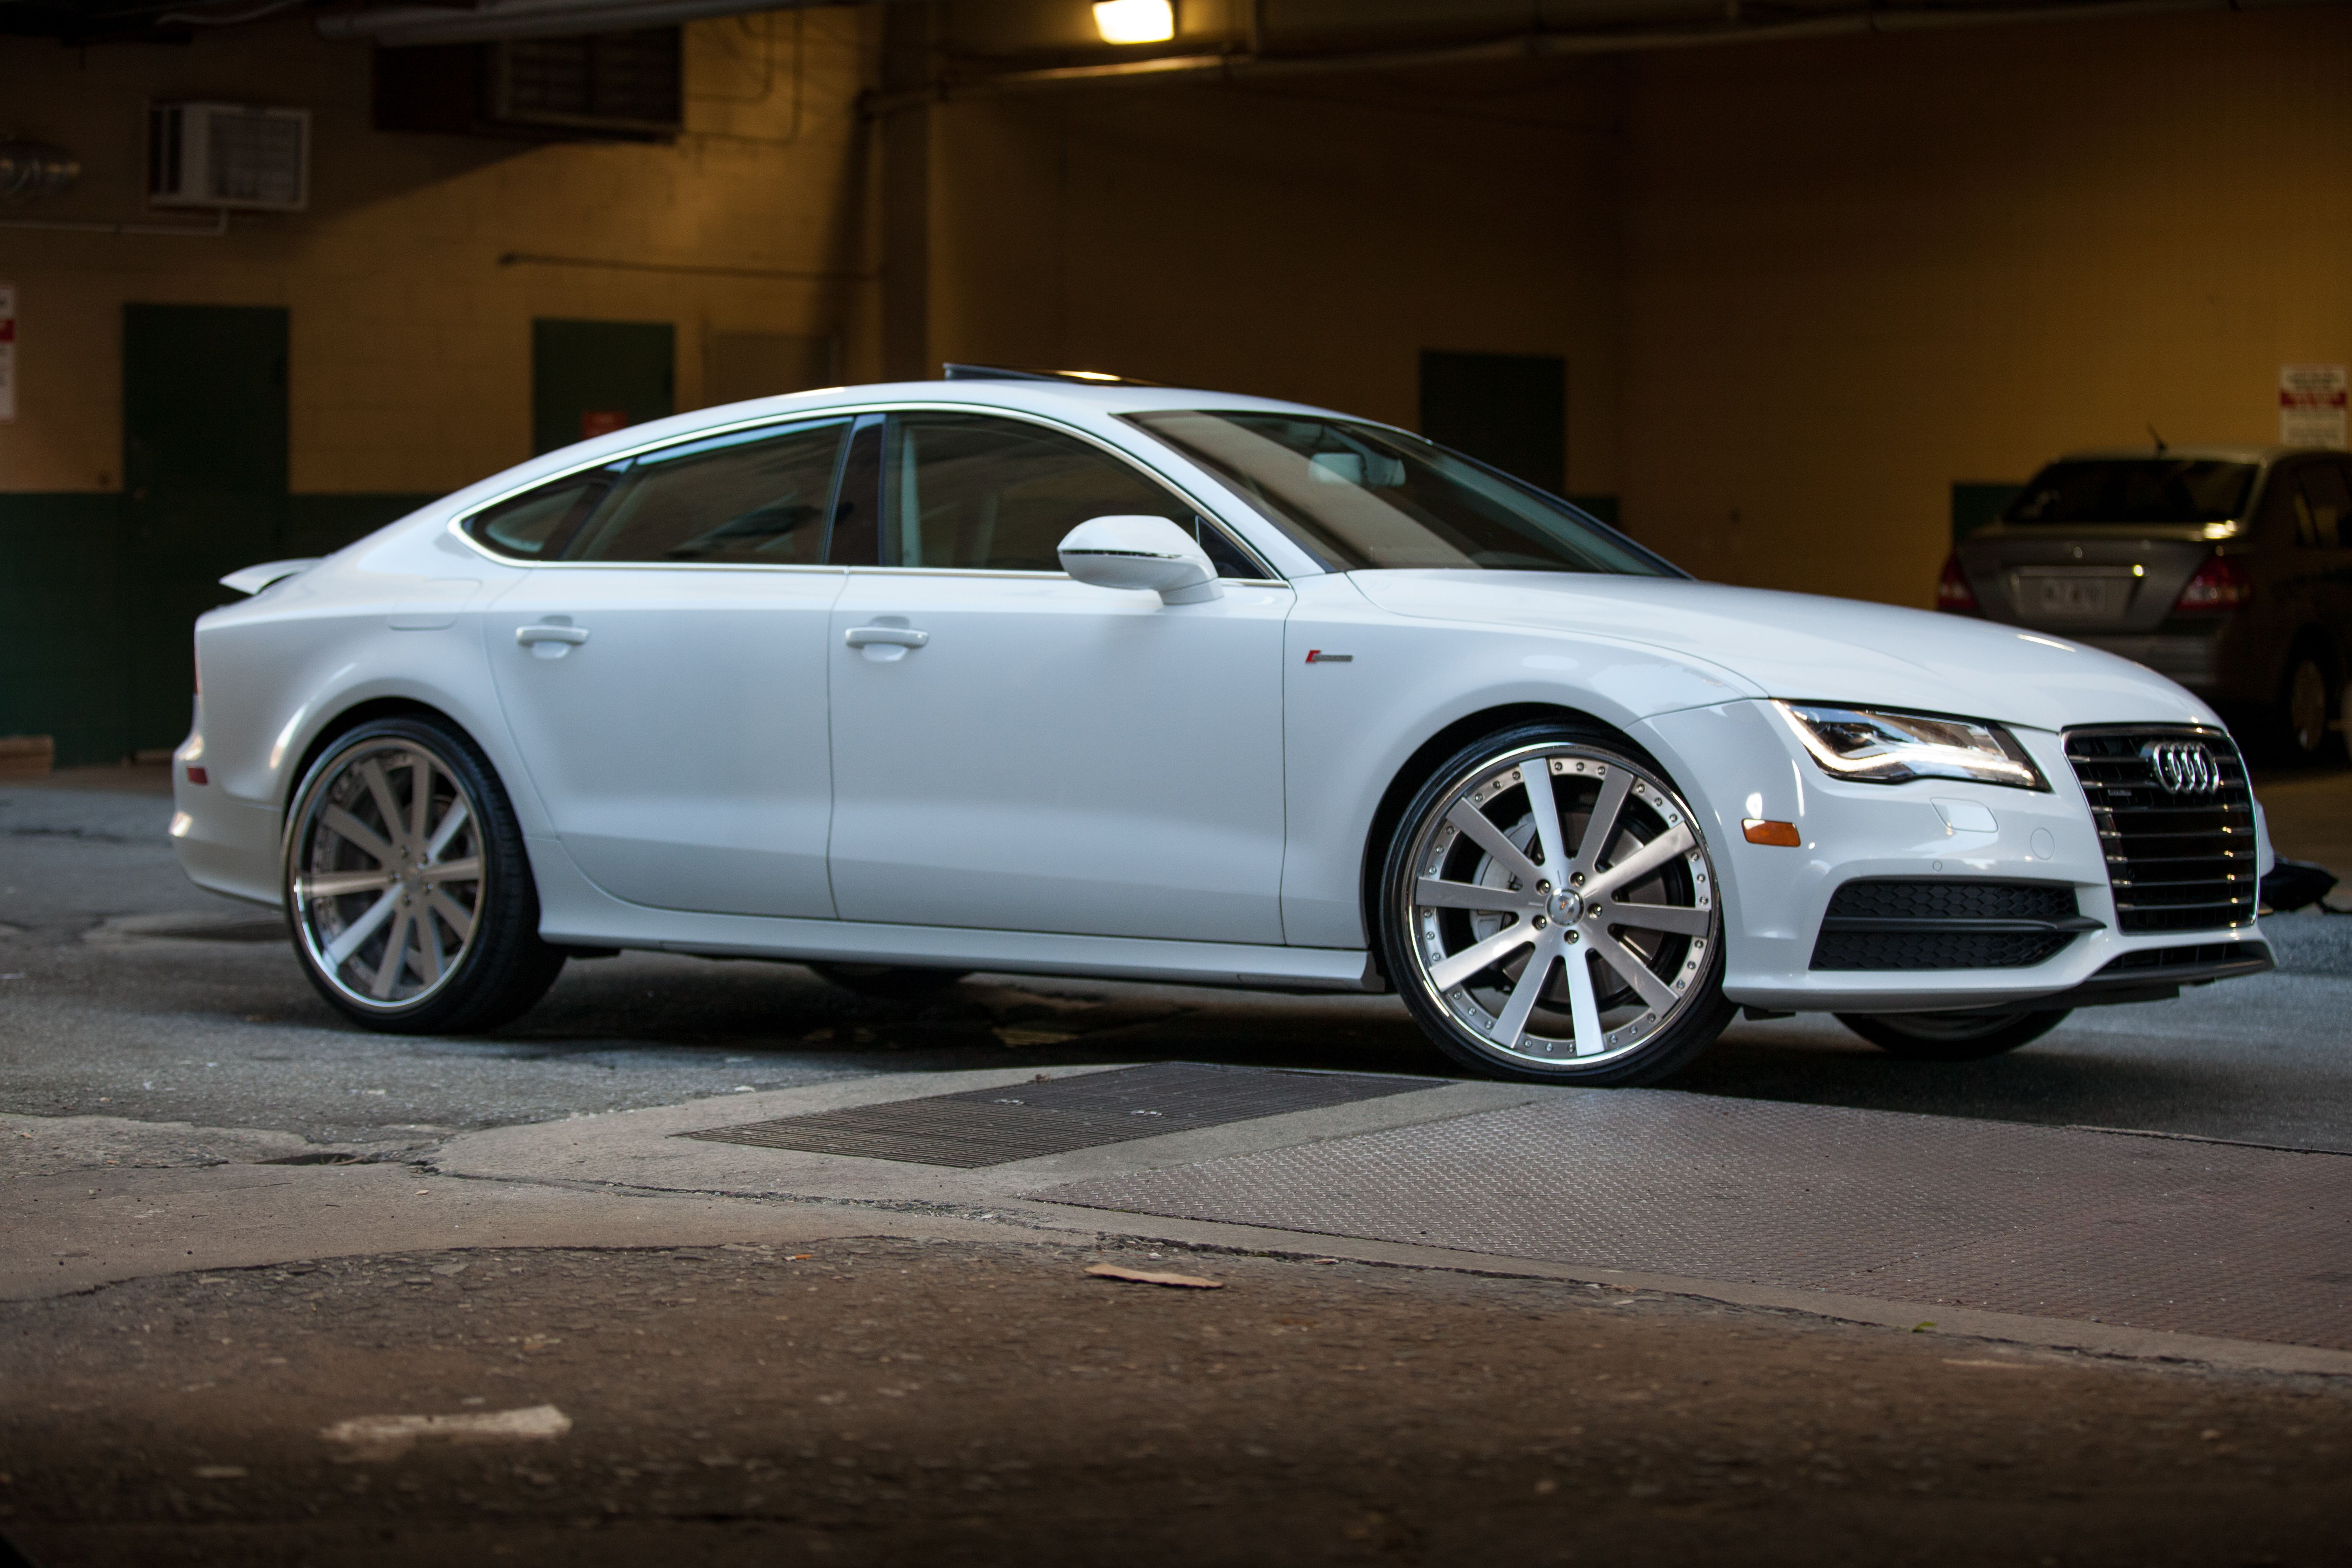 supercharged audi a7 best car money can buy cars pinterest audi a7 audi and cars. Black Bedroom Furniture Sets. Home Design Ideas